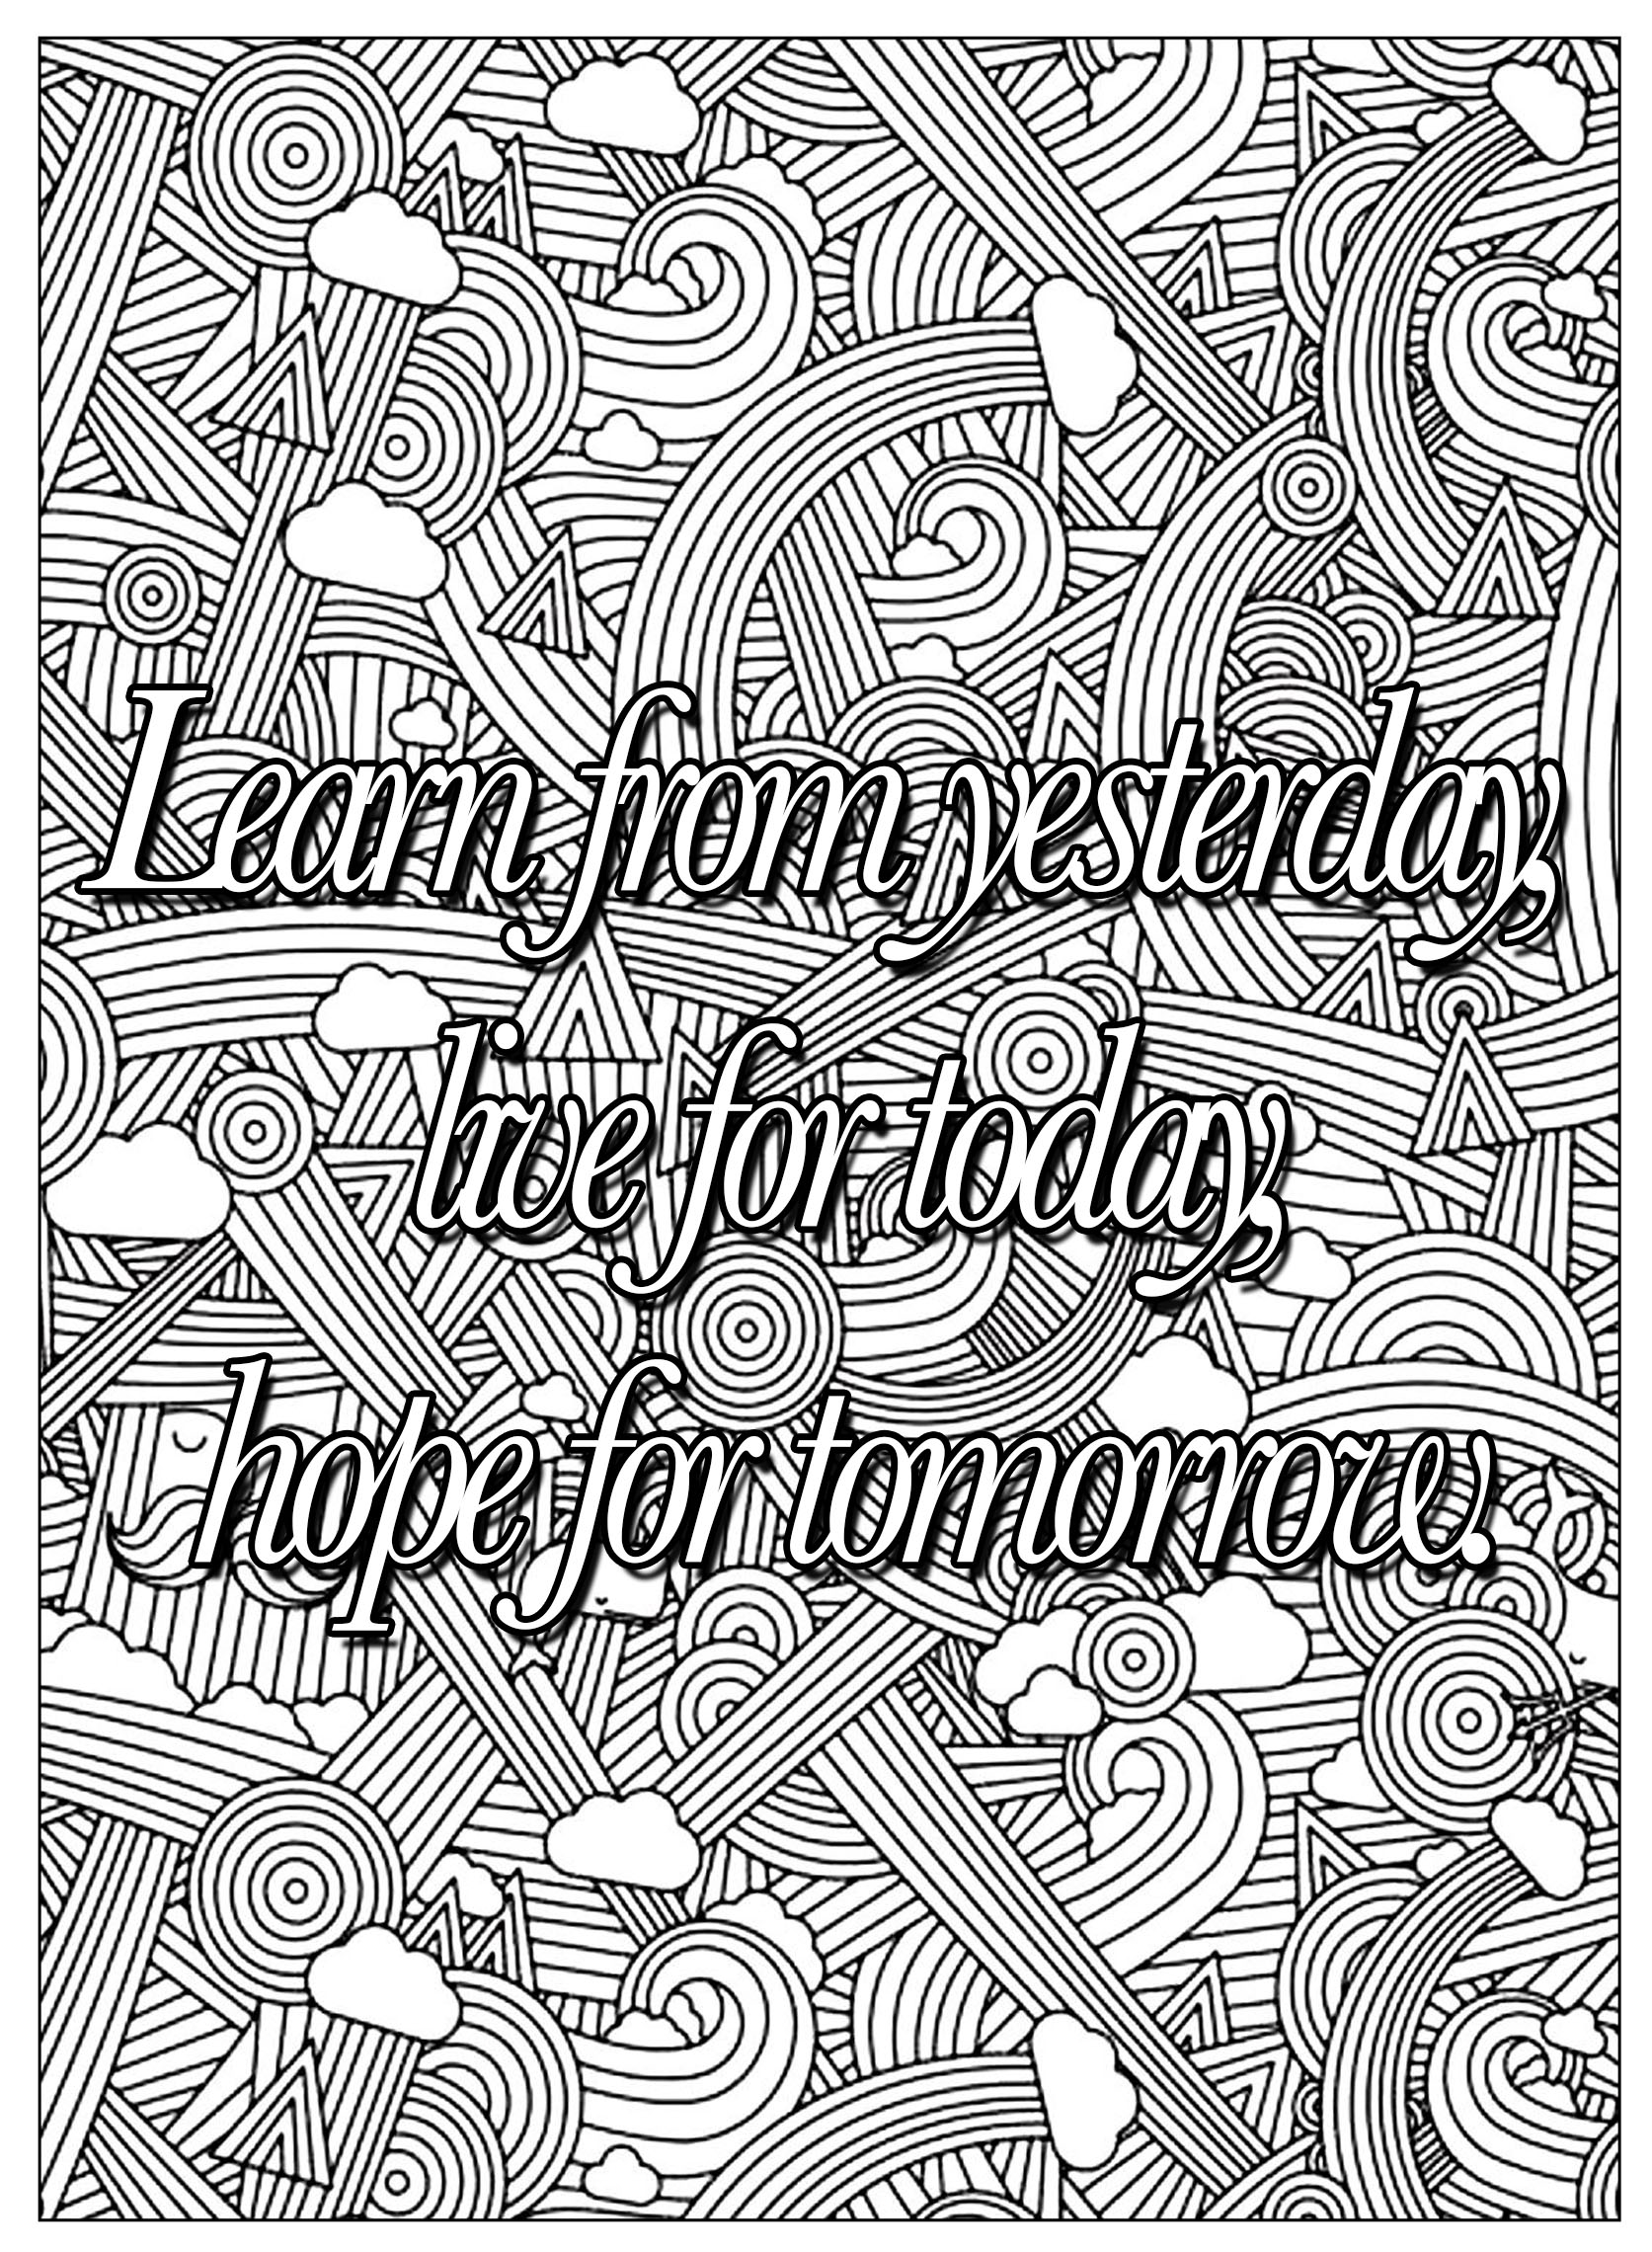 Coloring pages with quotes - Coloring Quote Learn From Yesterday Free To Print